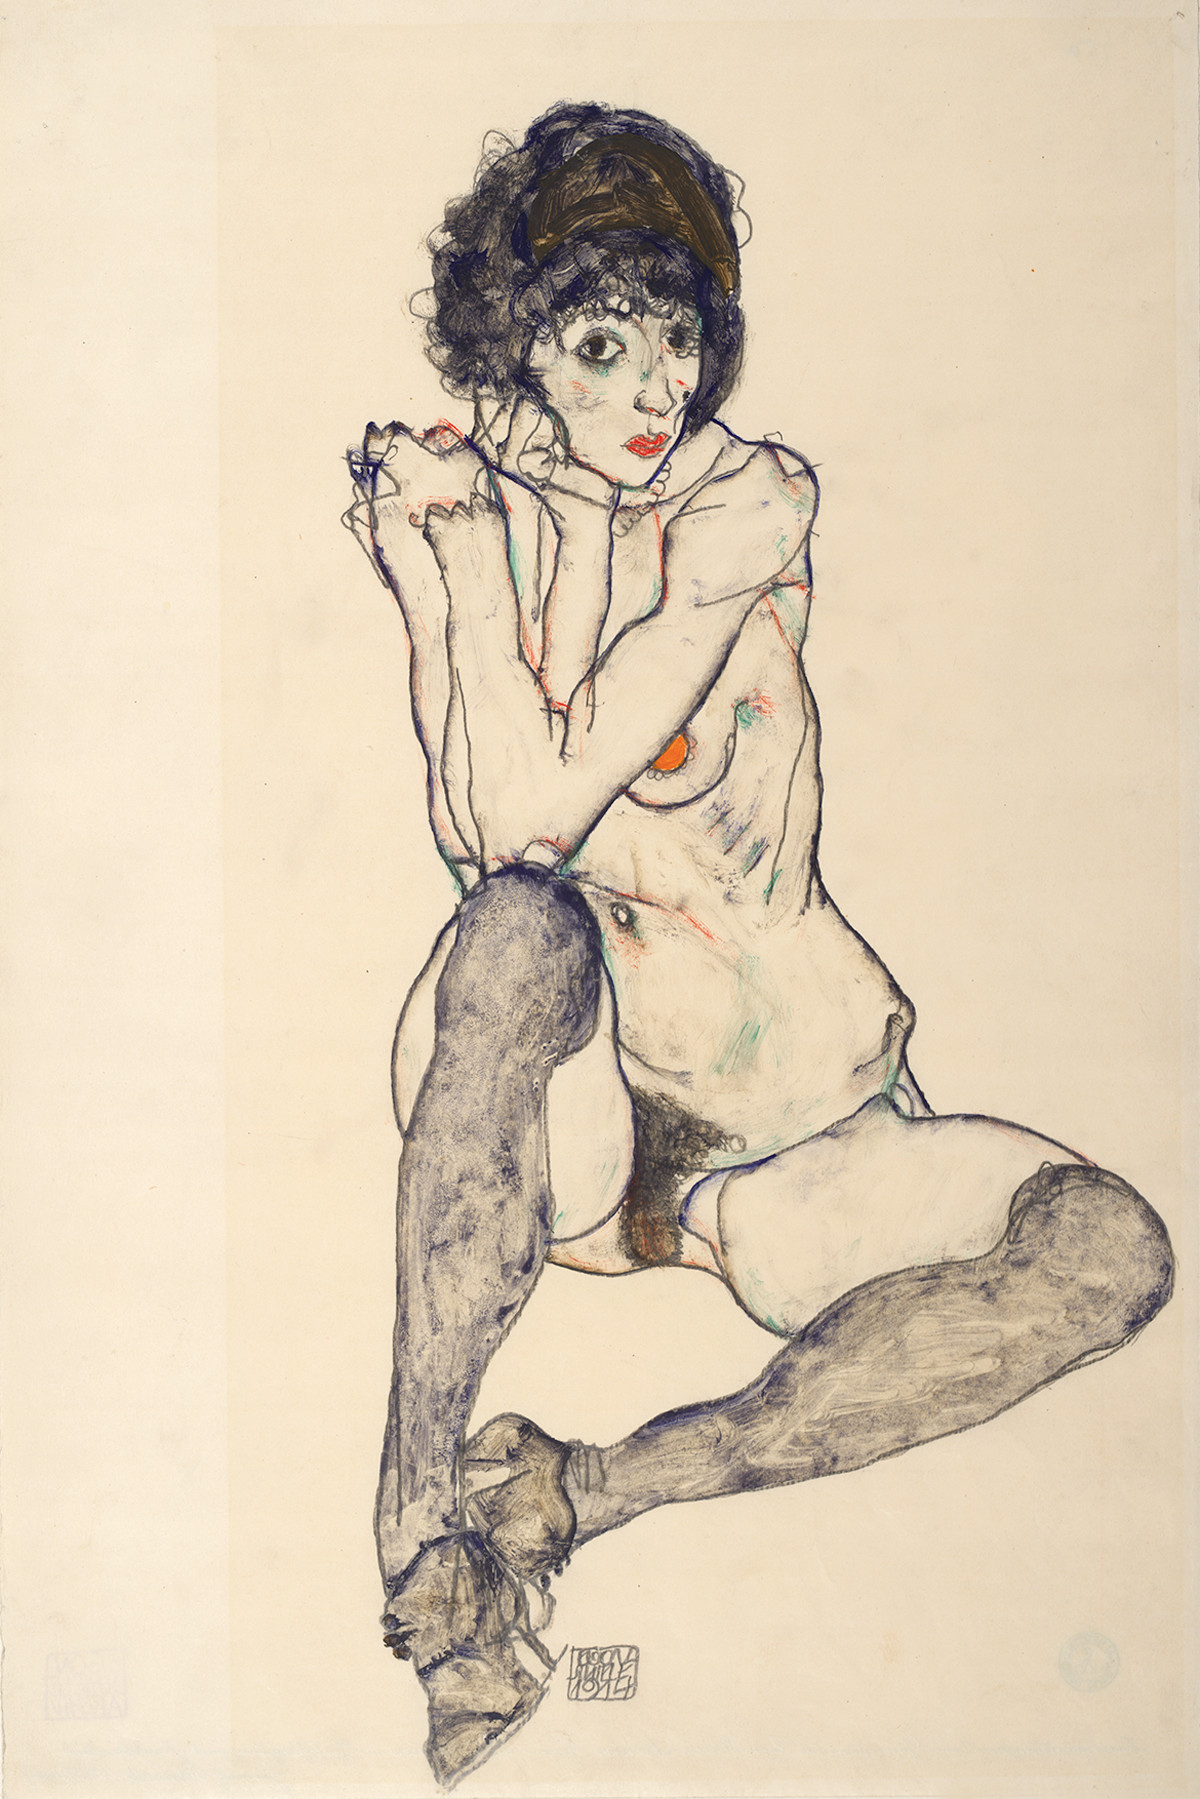 Egon Schiele,Seated Female Nude, Elbows Resting on Right Knee,1914. Graphite and gouache on Japan paper. 48 x 32 cm. The Albertina Museum, Vienna. Exhibition organised by the Royal Academy of Arts, London and the Albertina Museum, Vienna.